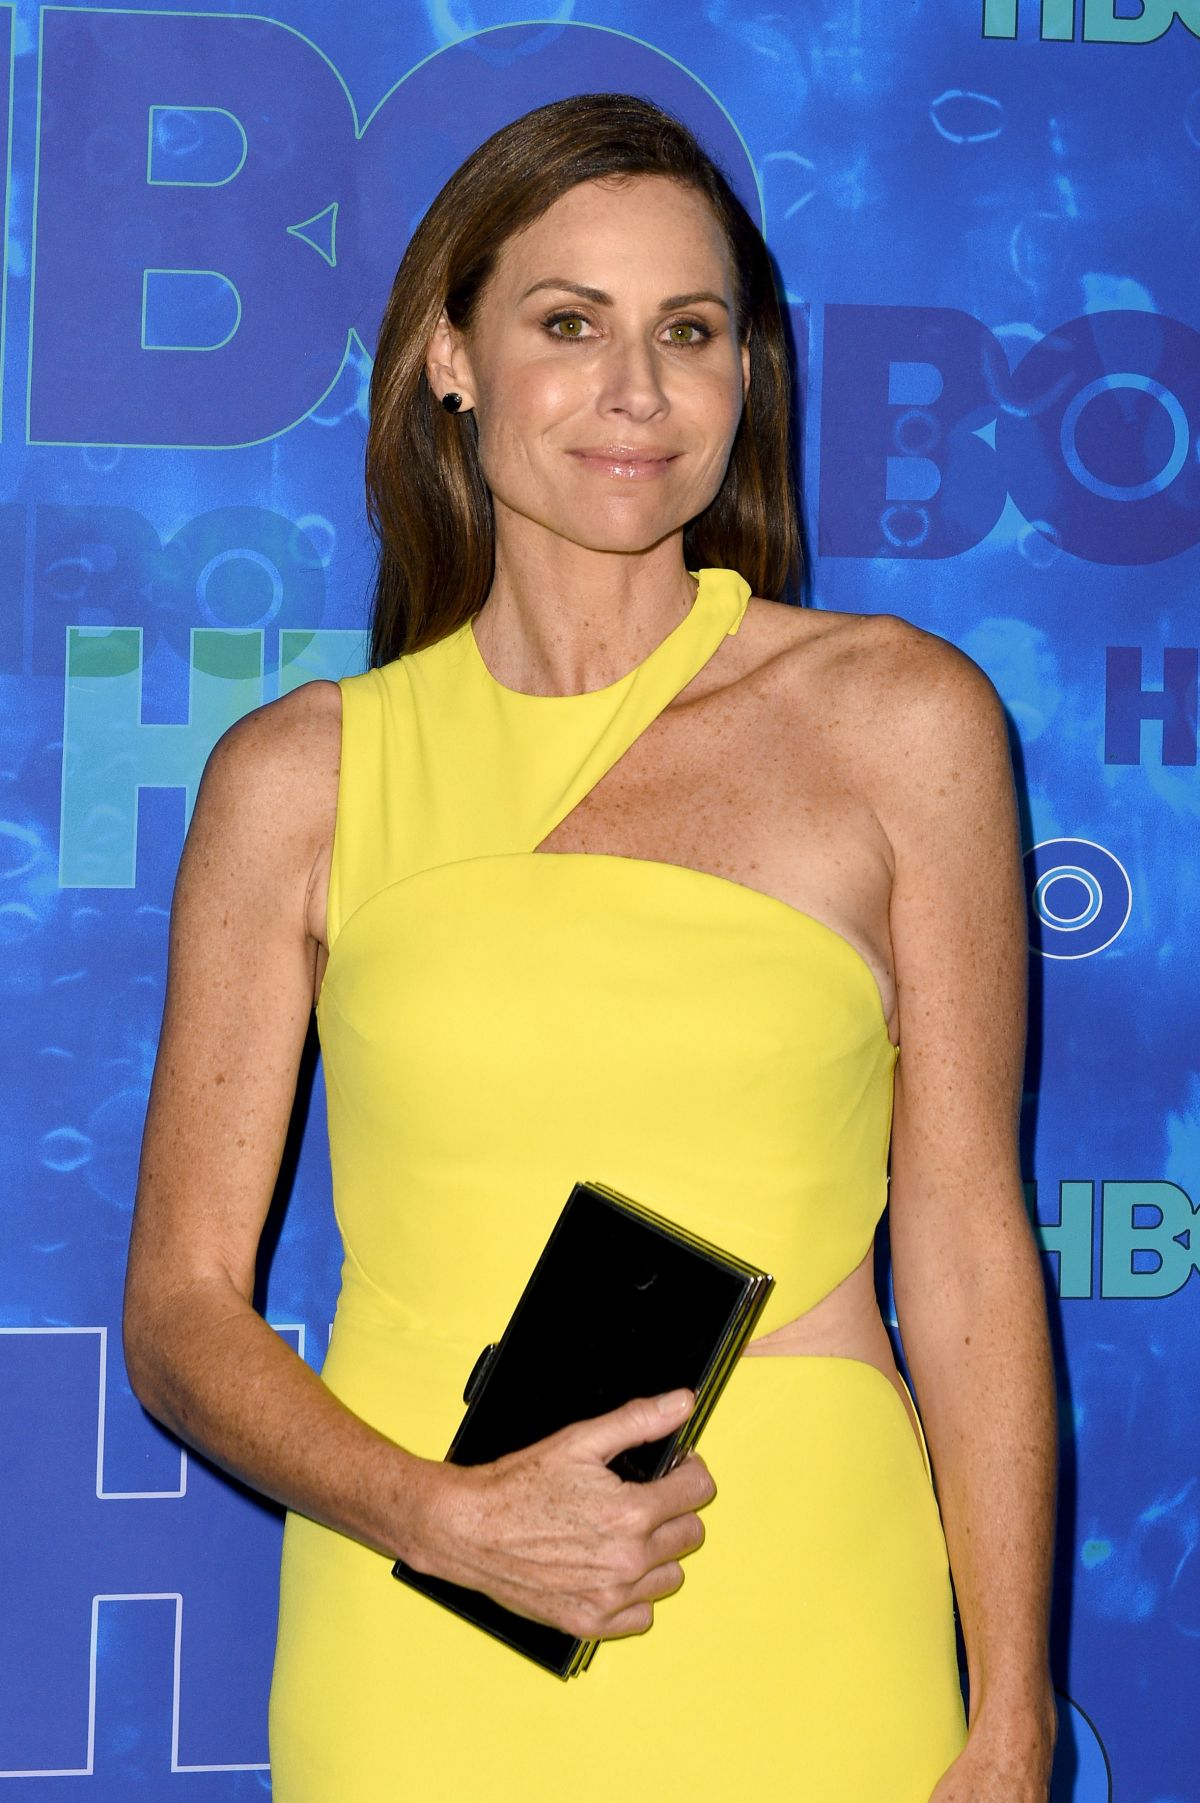 MINNIE DRIVER at HBO's 2016 Emmy's After Party in Los Angeles 09/18/2016